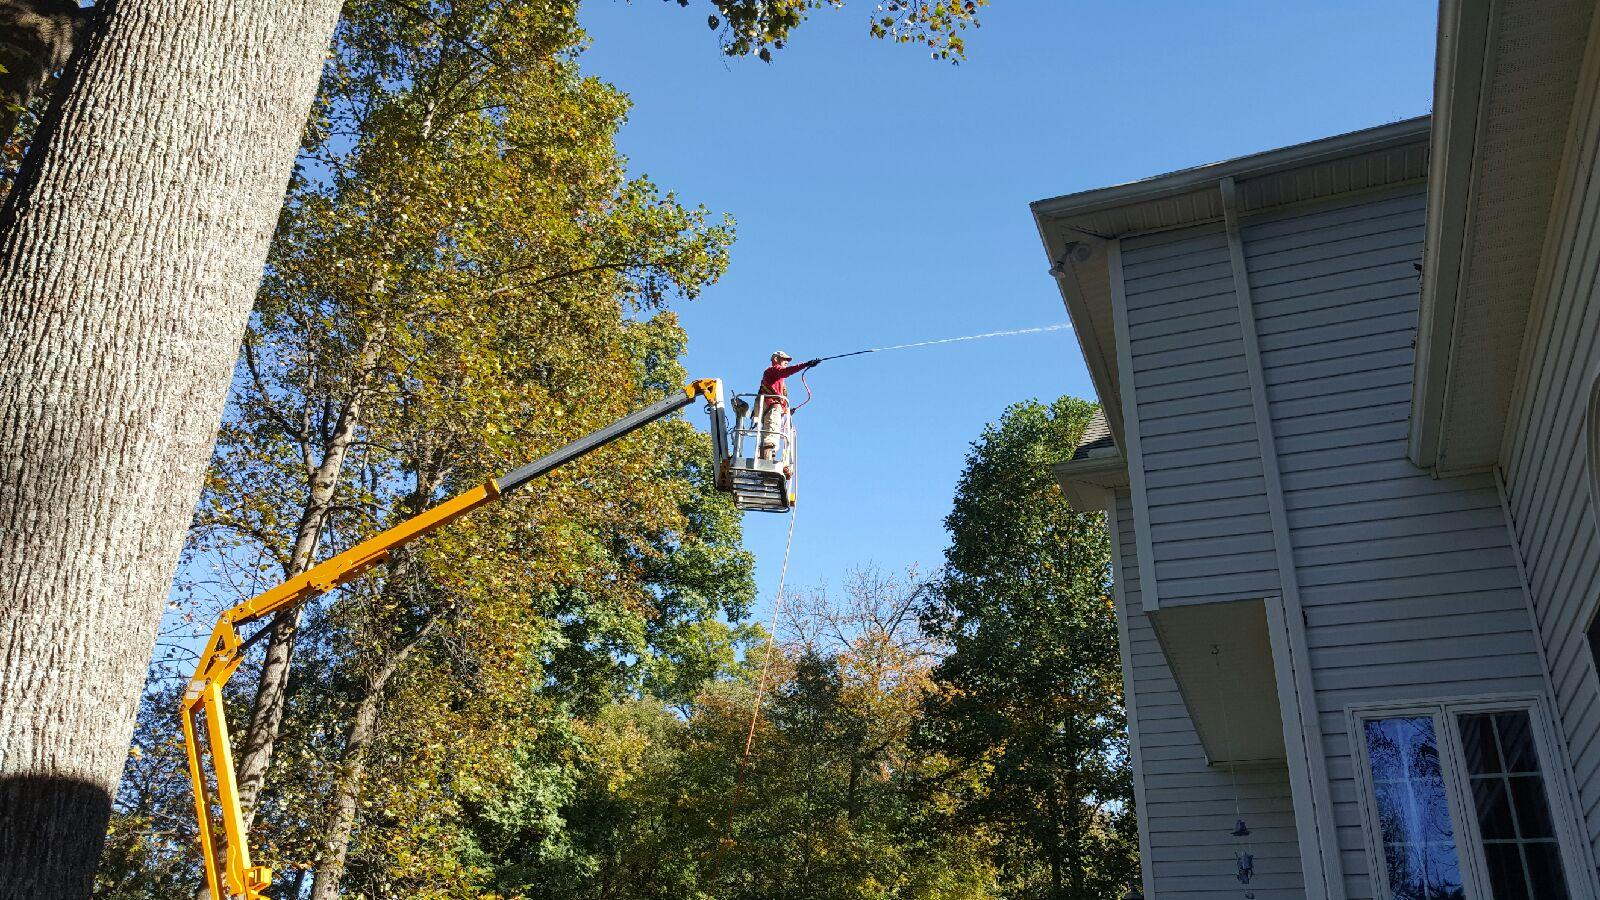 Boom Lift | Pressure Washing Company in Martinsburg WV